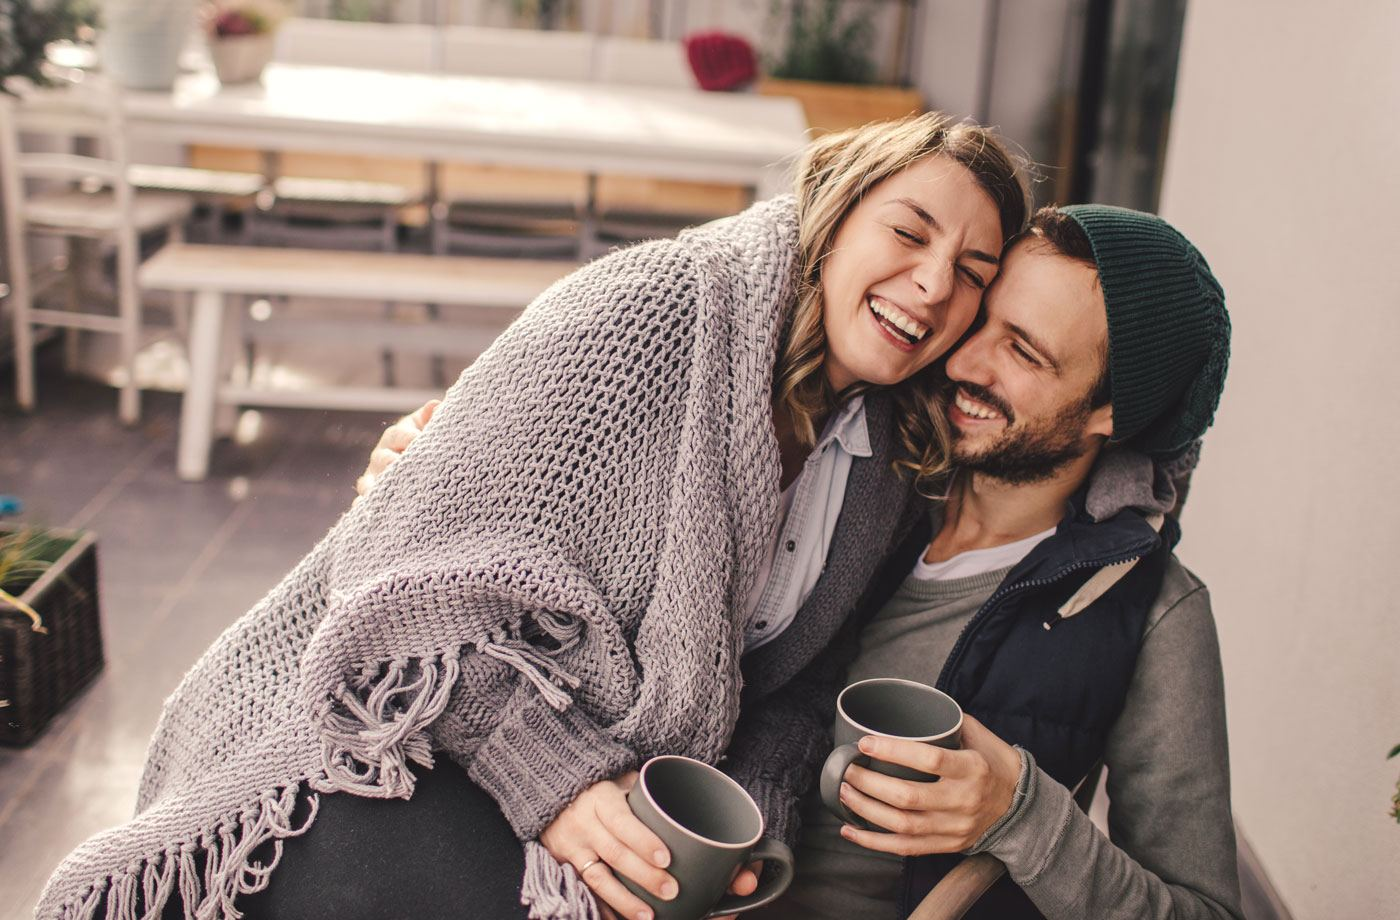 The top relationship deal breaker, according to Myers-Briggs